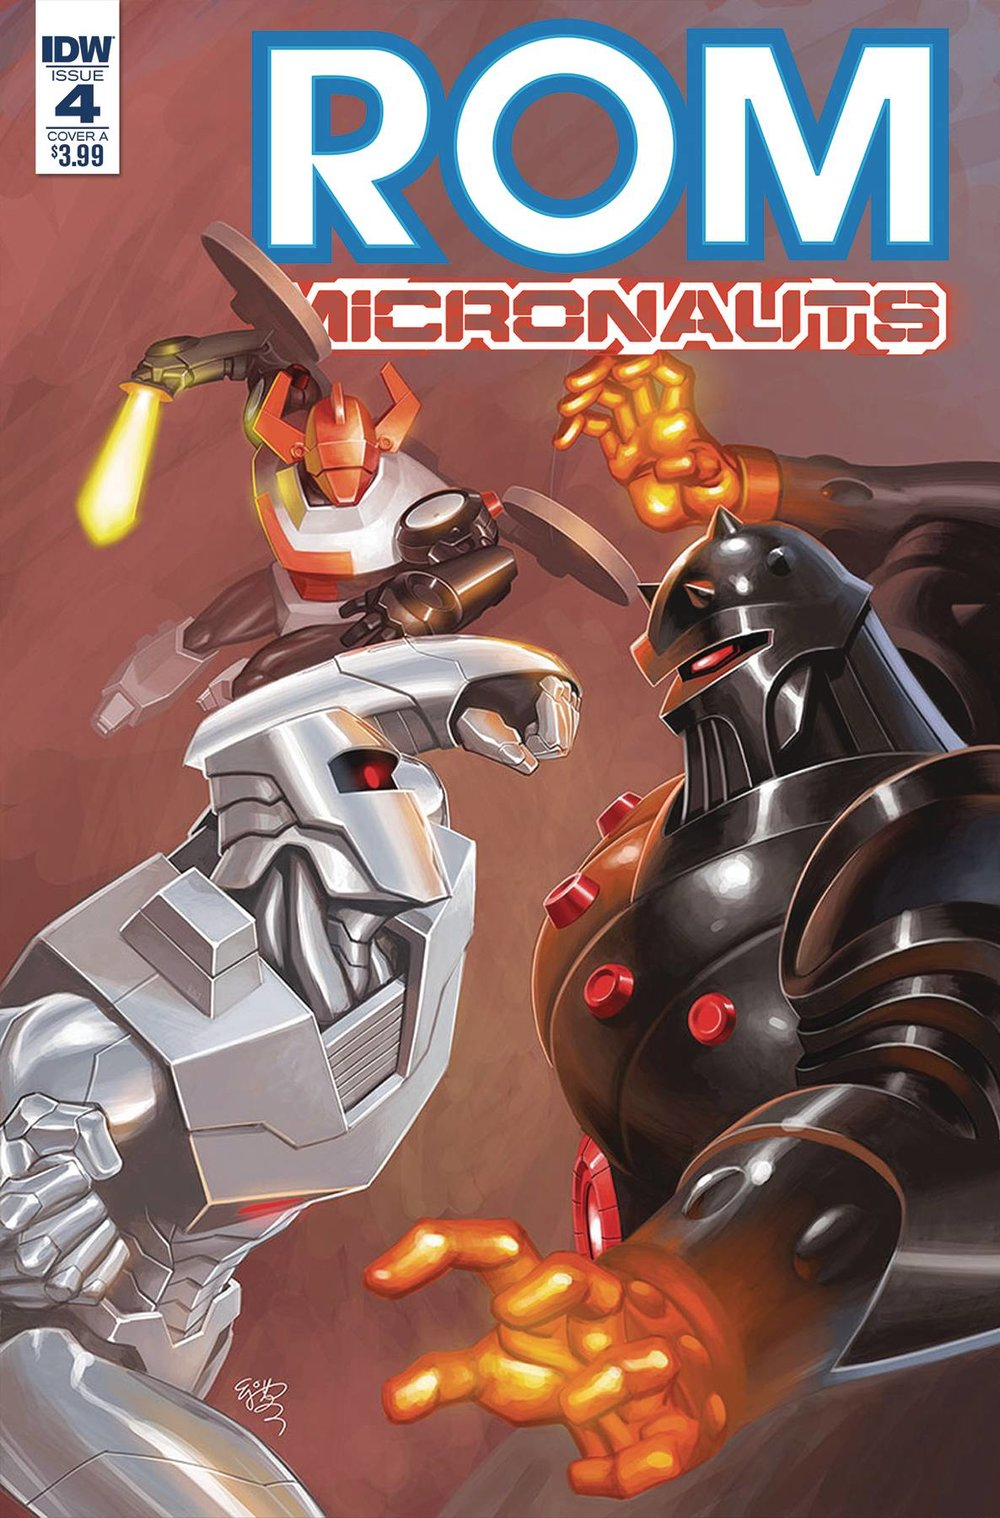 ROM & THE MICRONAUTS 4 of 5 CVR A SU.jpg